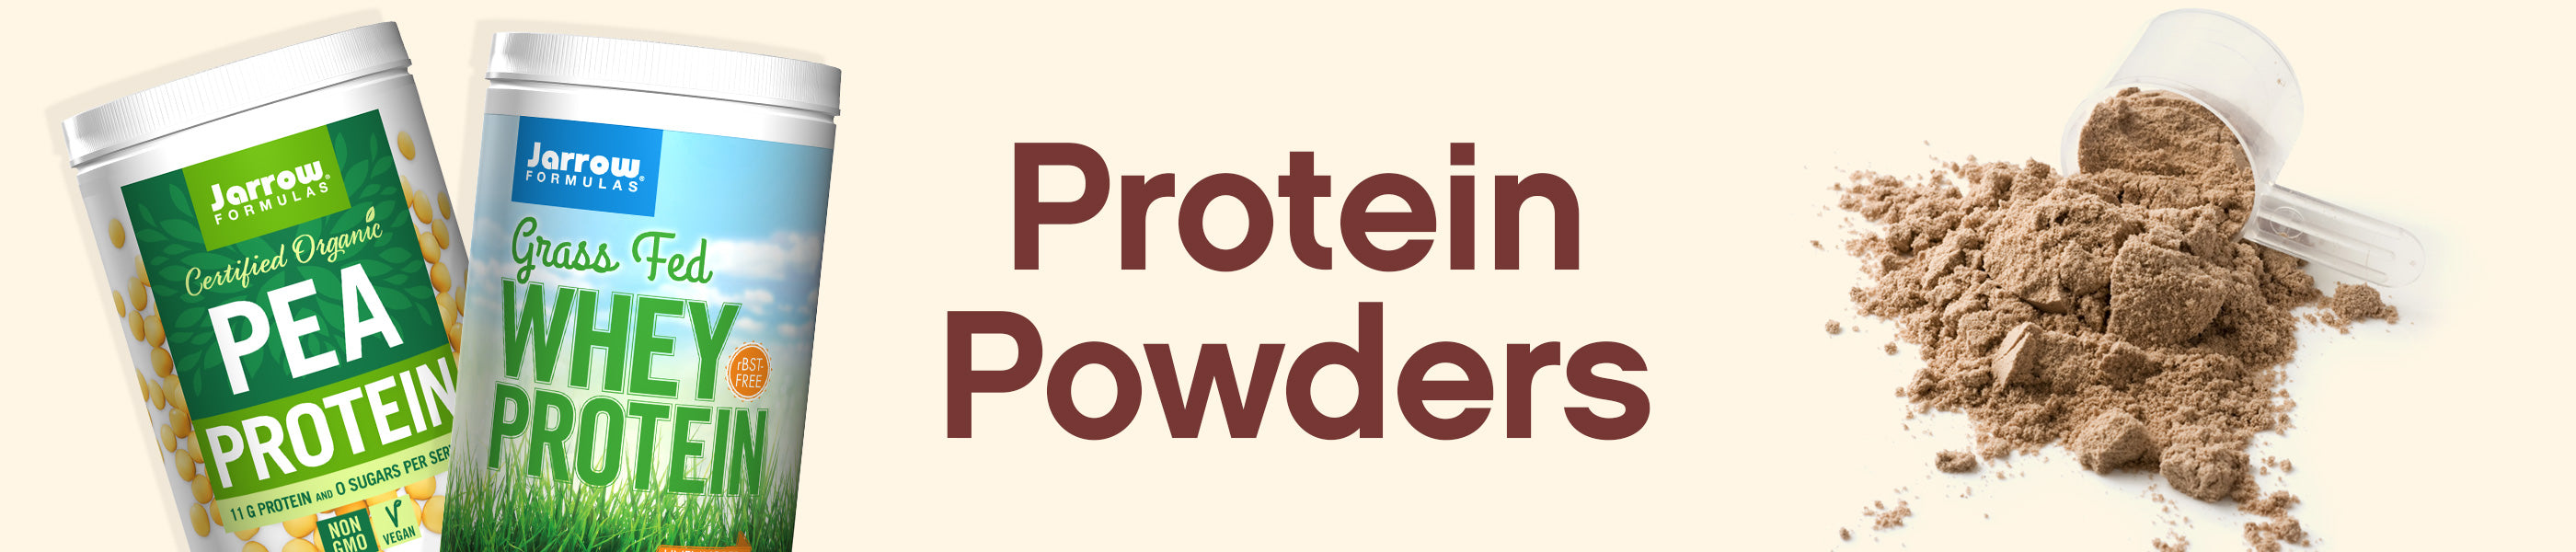 Protein Powders (Whey & Plant) header image